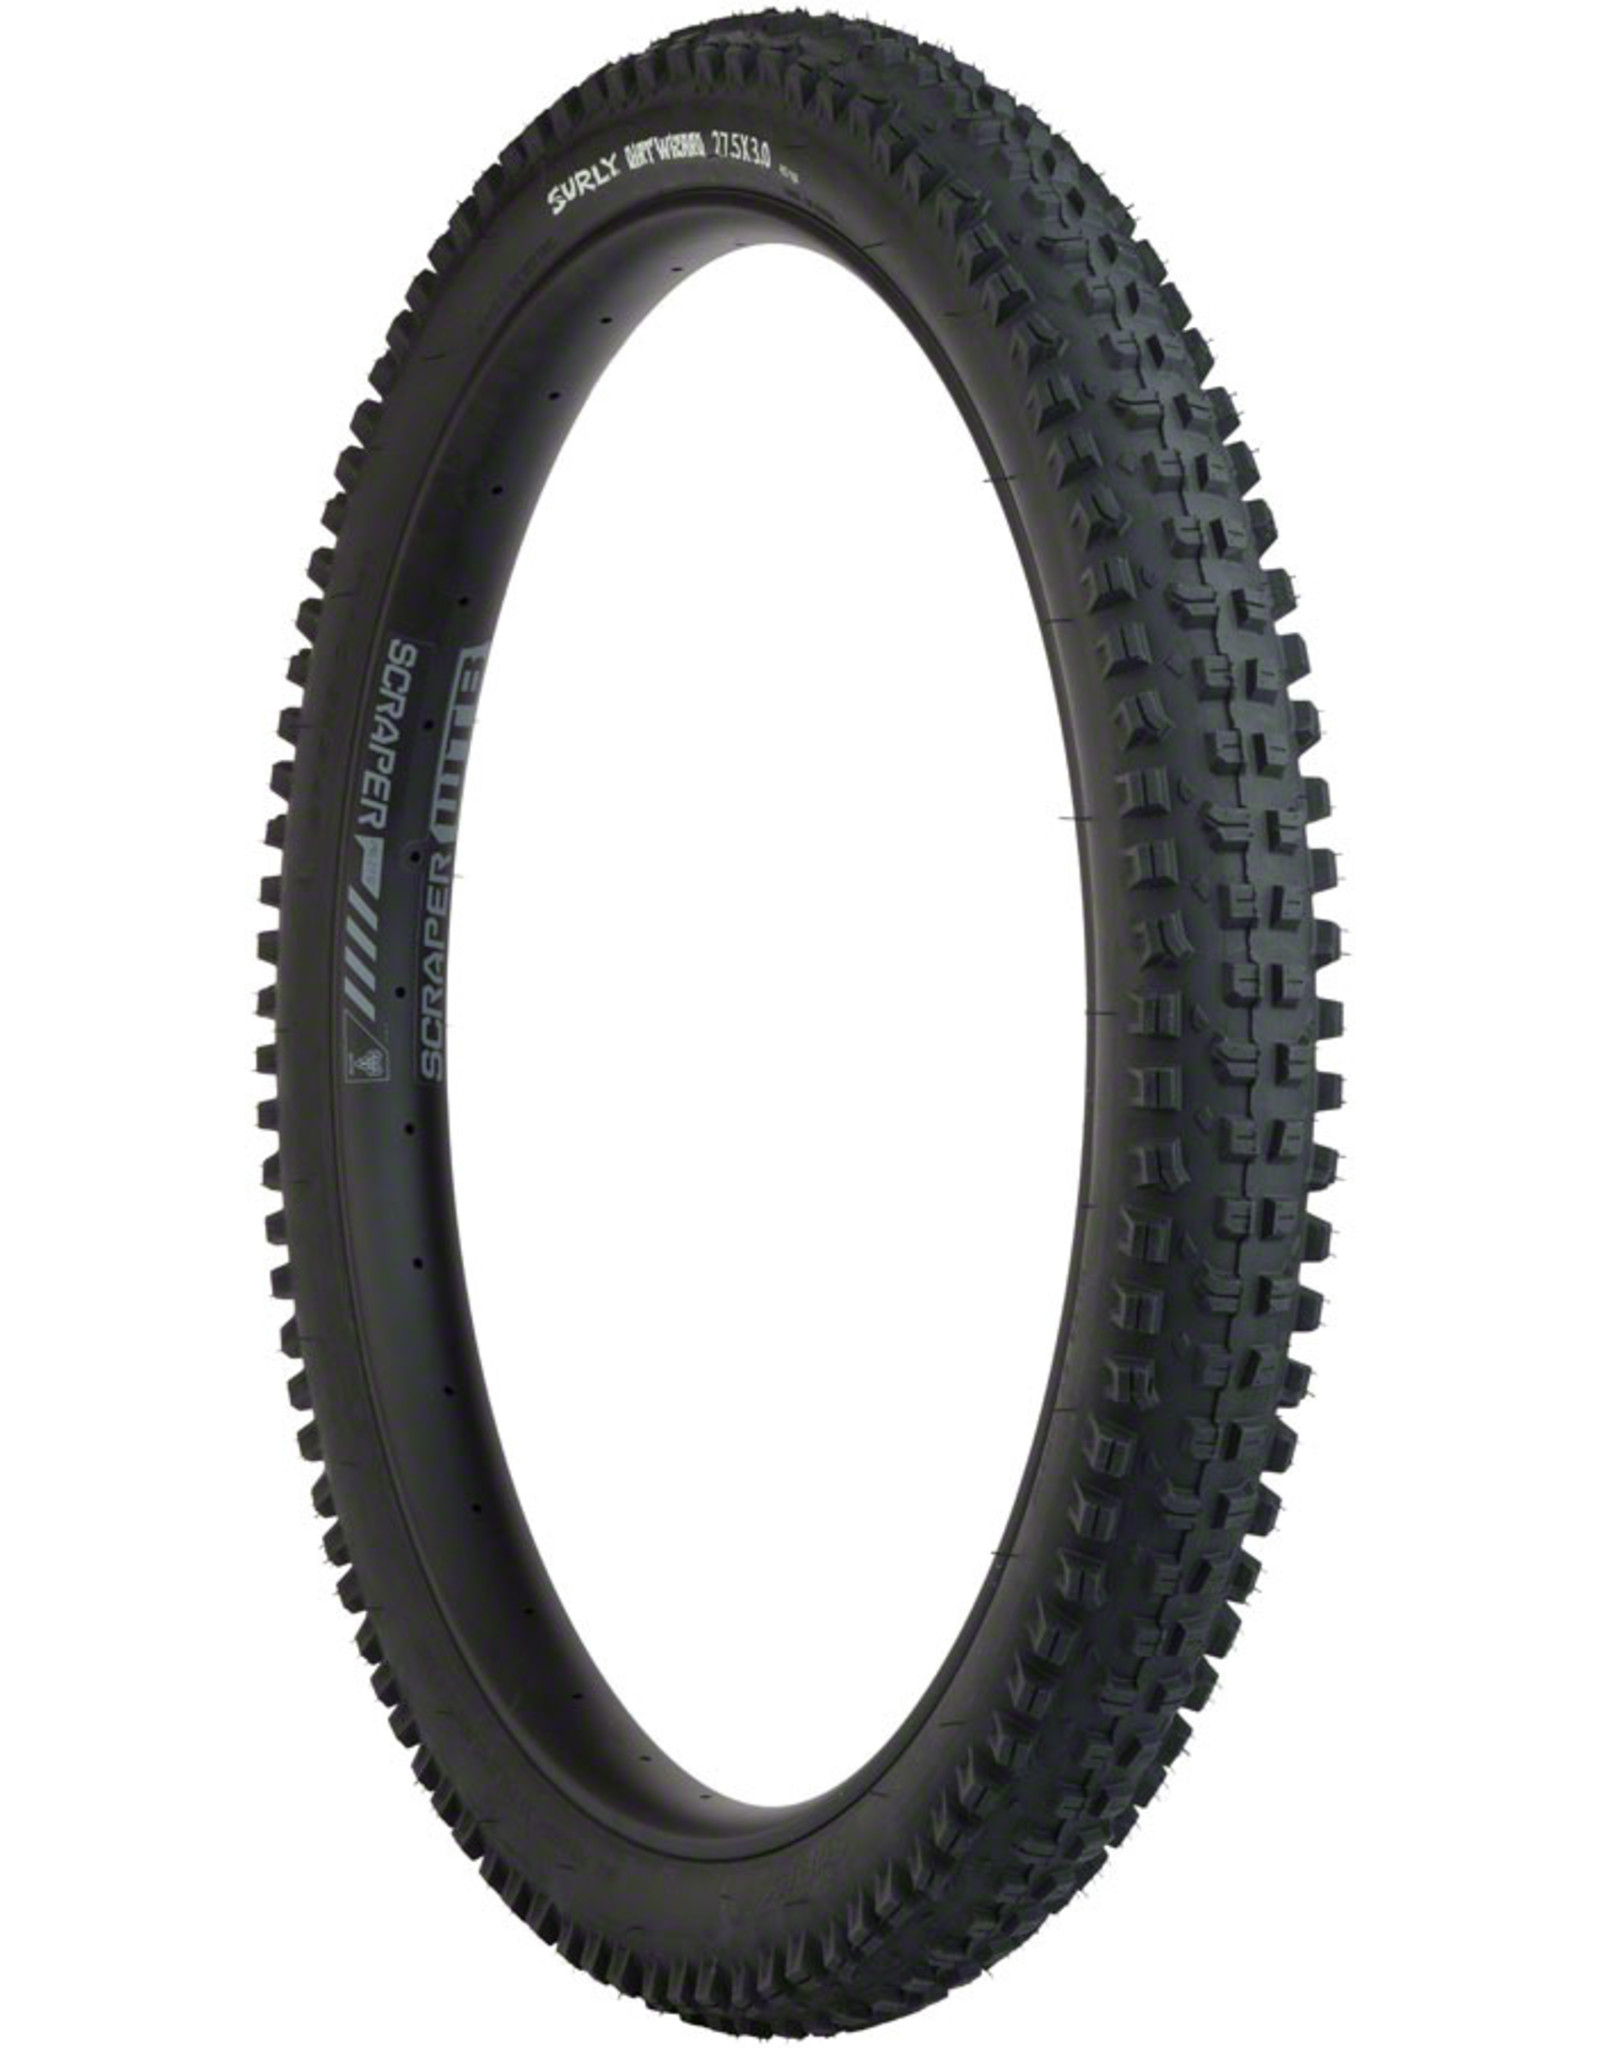 Surly Surly Dirt Wizard Tire - Tubeless, Folding, 60tpi